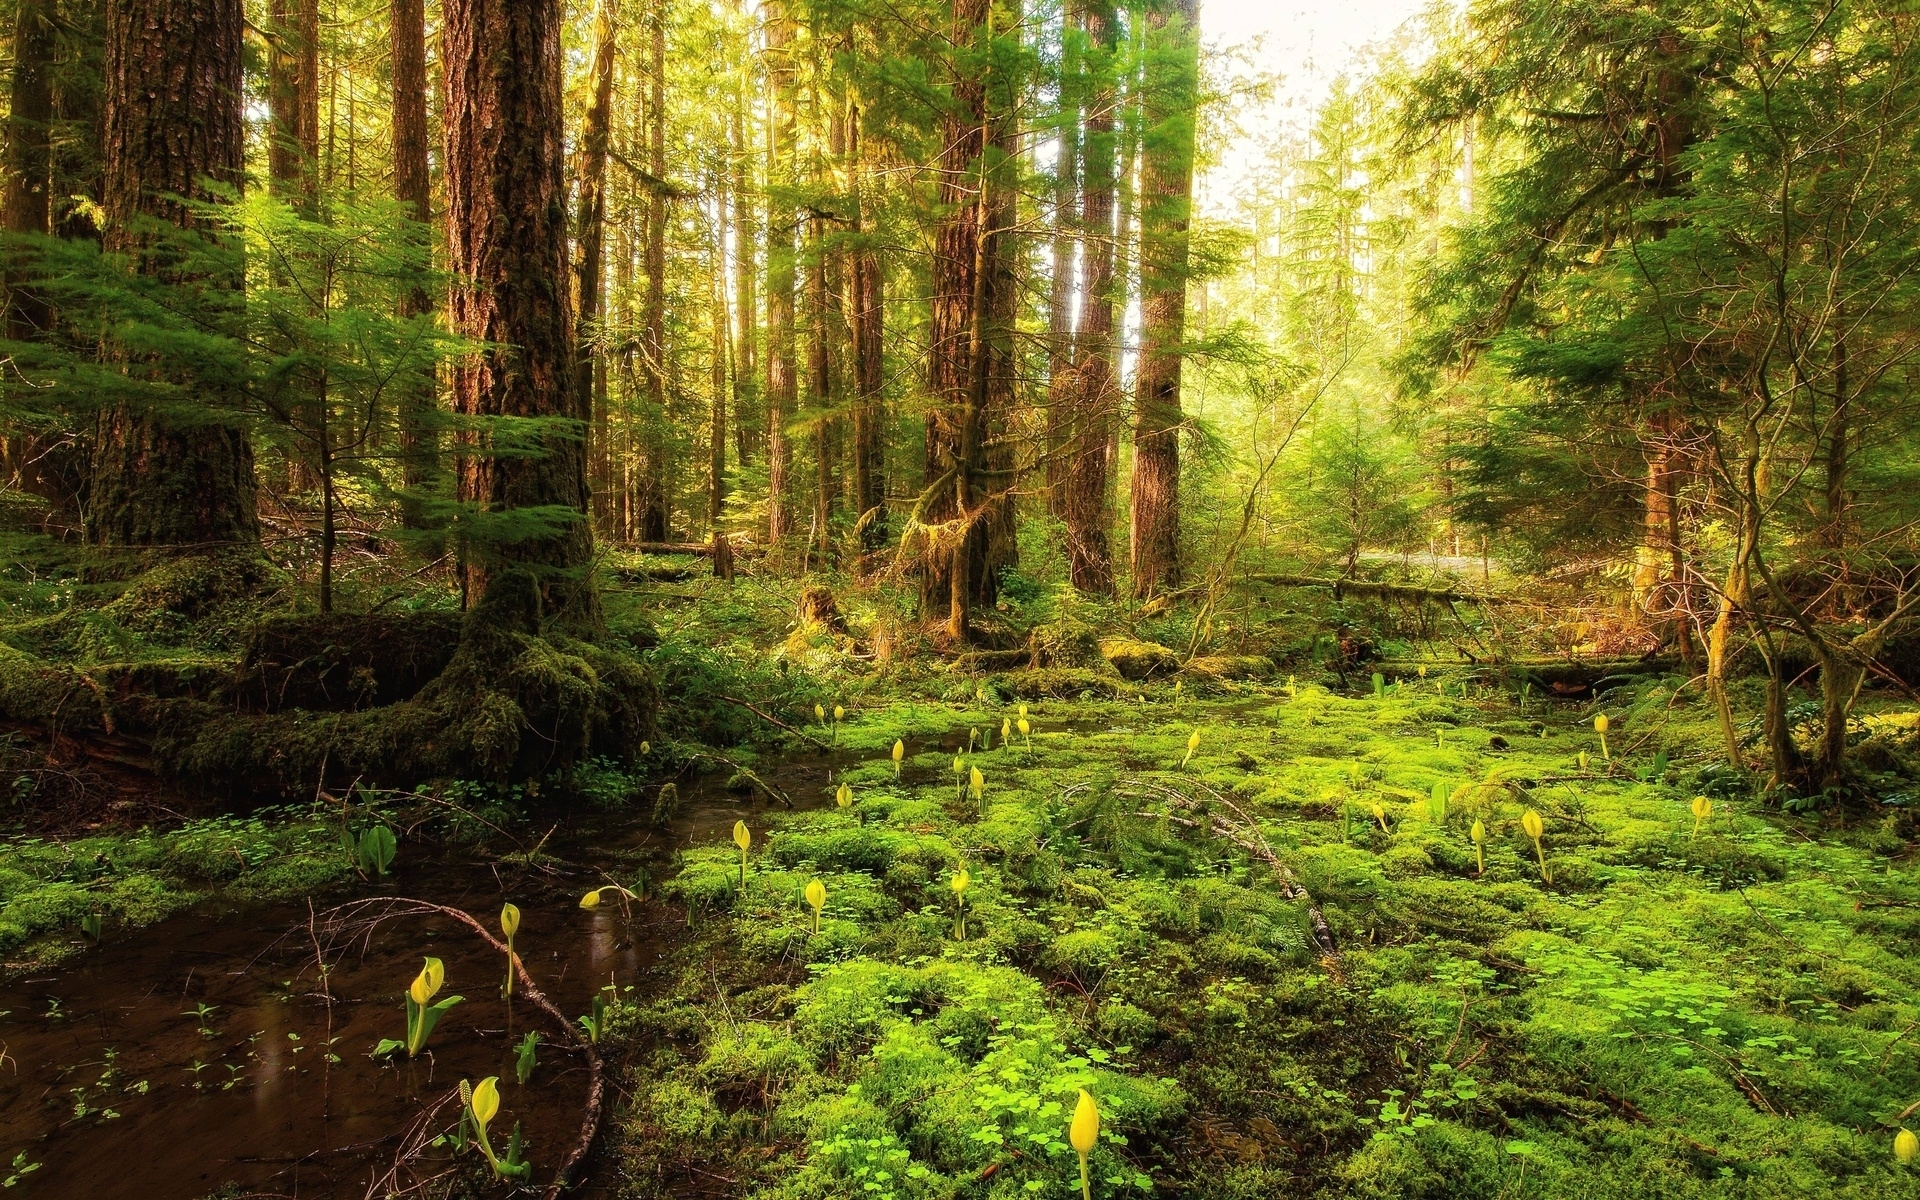 Ipad Animated Wallpaper Forest Plants Water Sunny Wallpapers Forest Plants Water